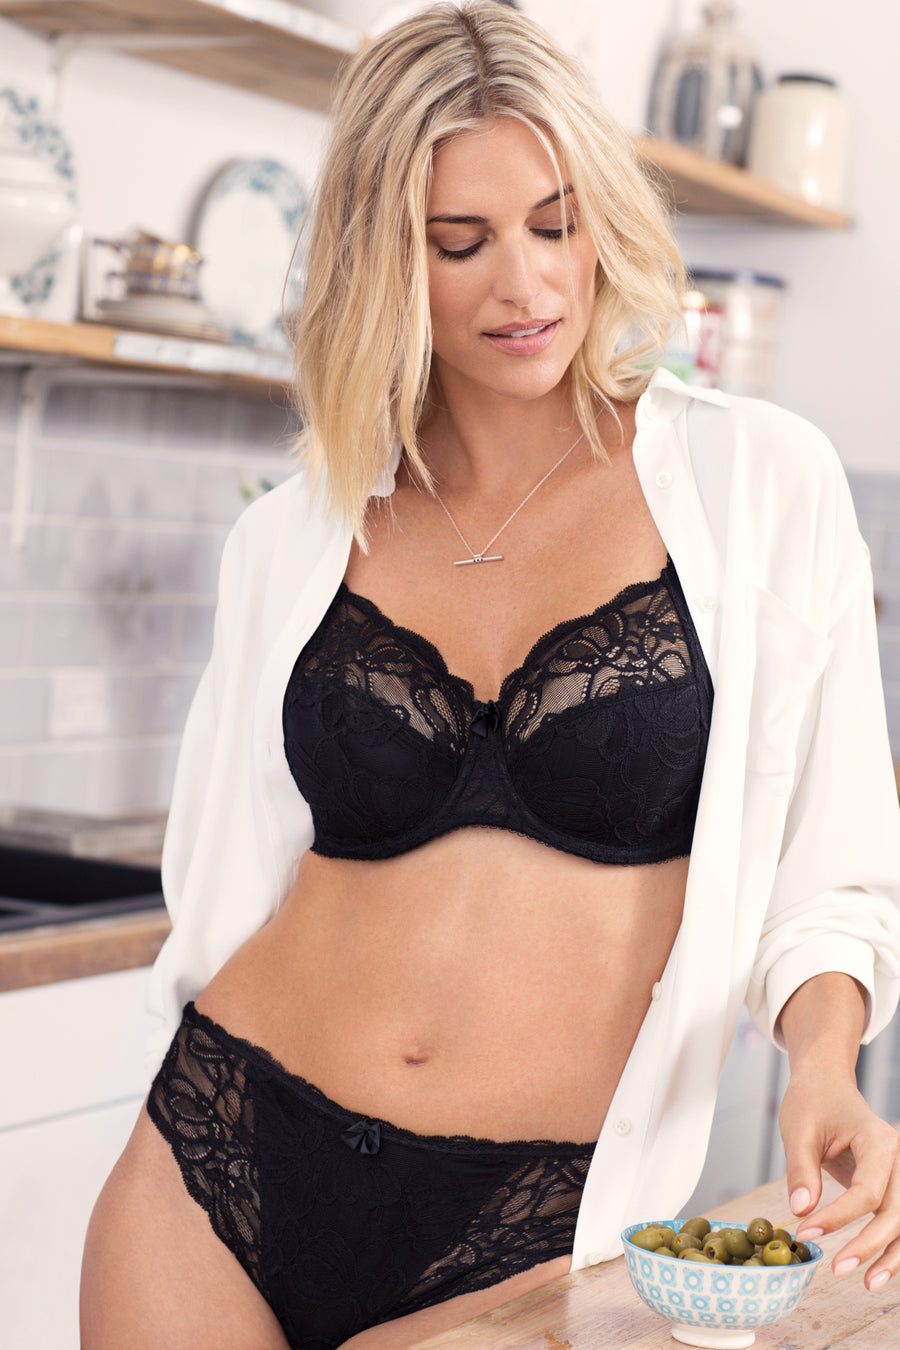 Jacqueline Lace Black Uw Full Cup Bra With Side Support